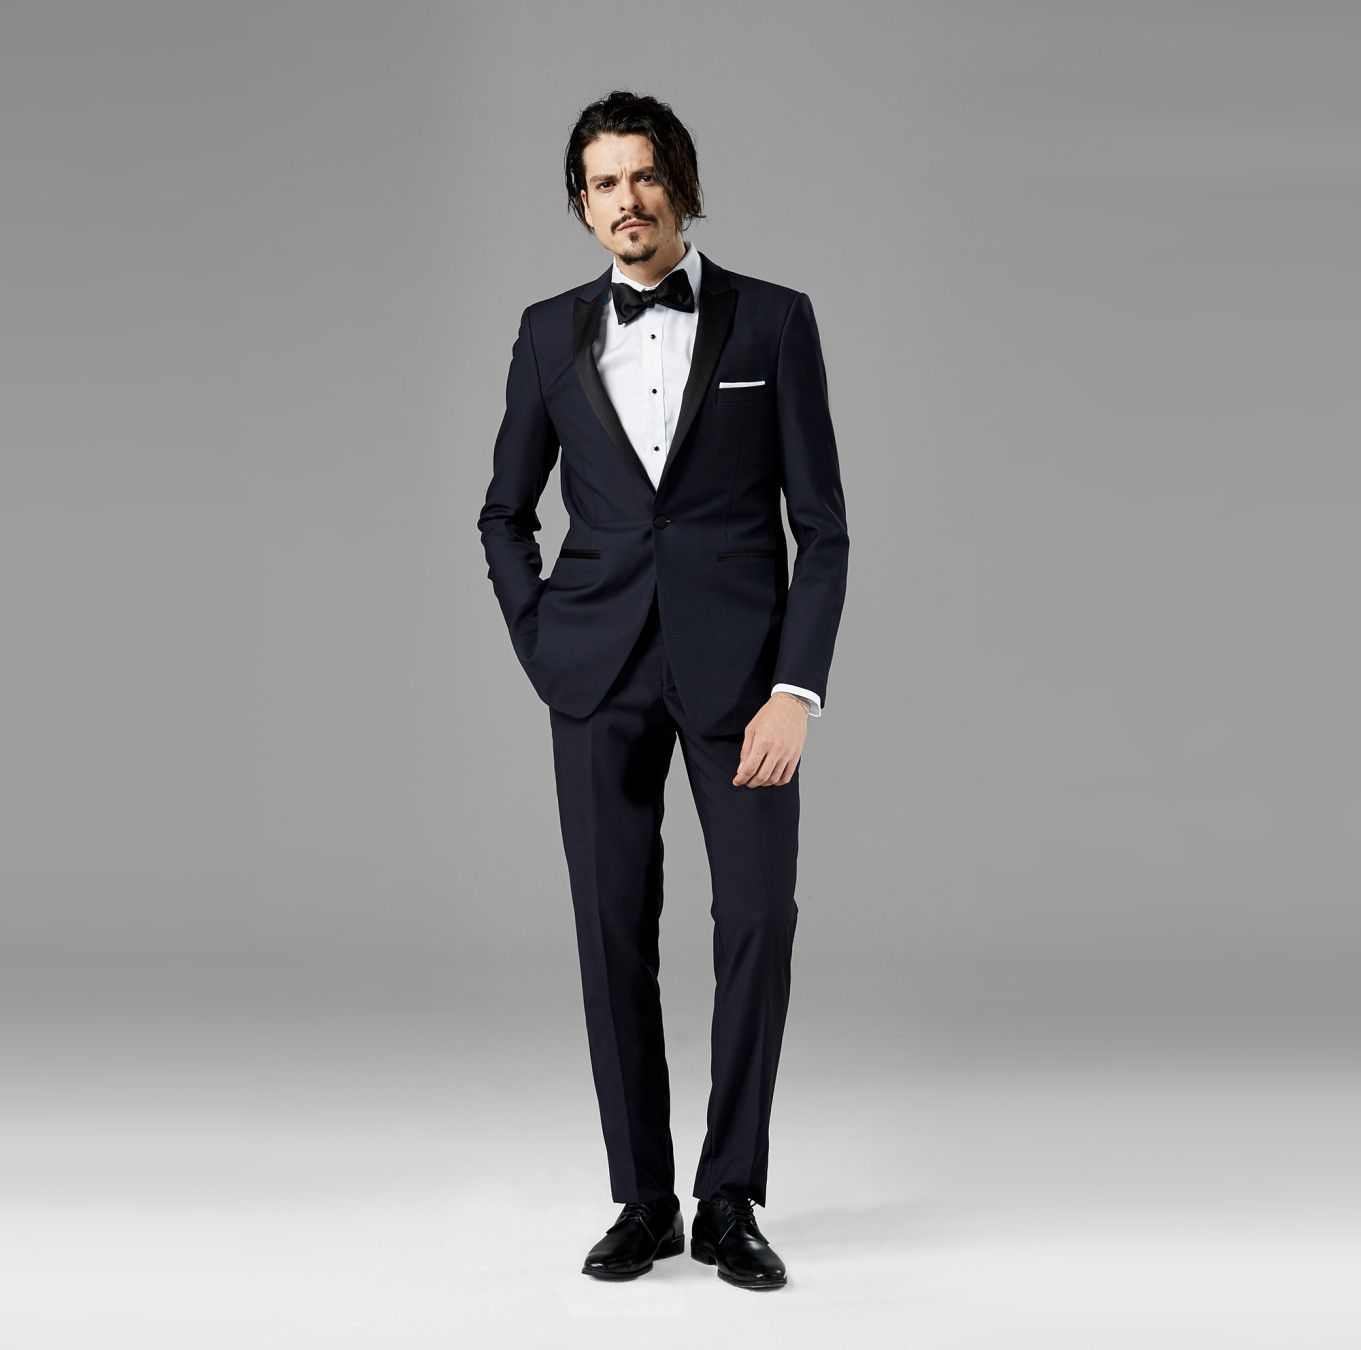 5 Tuxedo Rental Websites - Where to Rent a Tuxedo Last-Minute